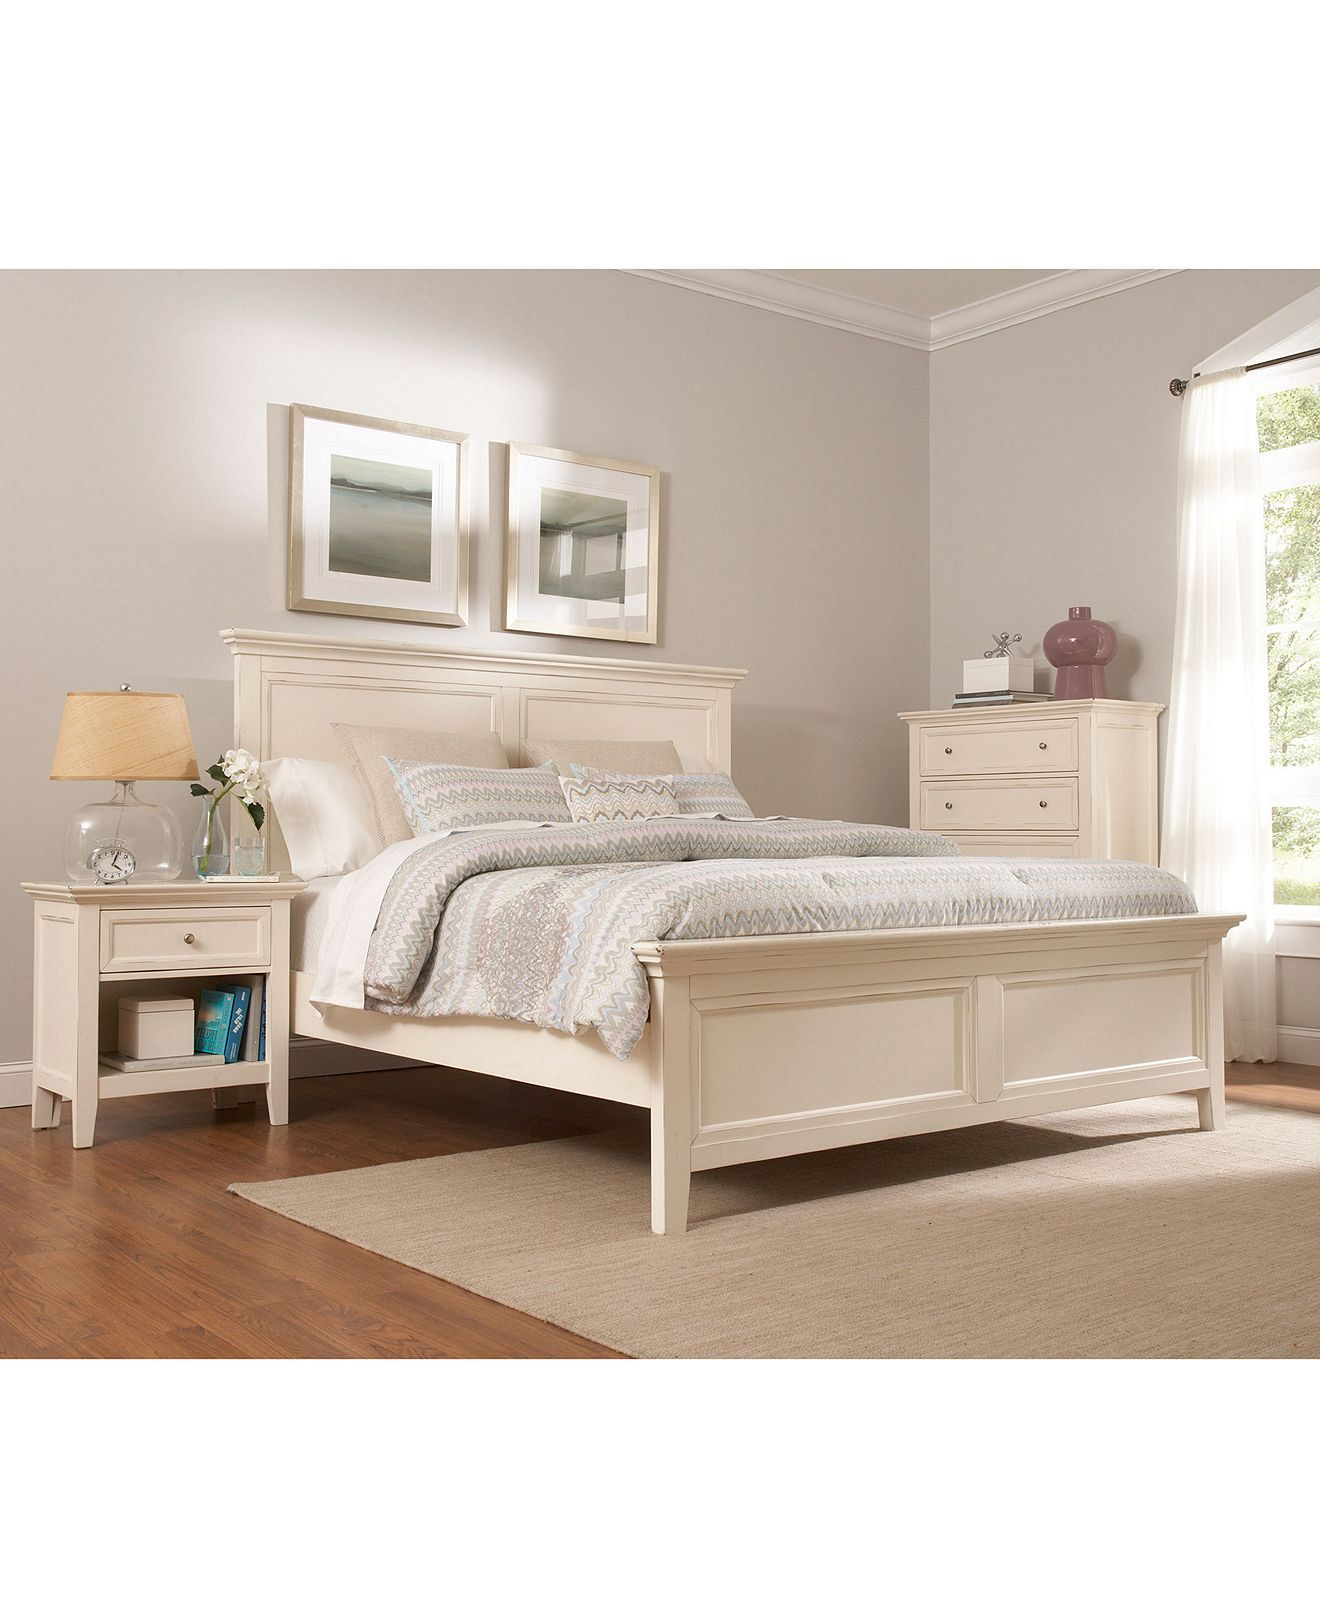 Sanibel Bedroom Furniture Collection, Created for Macy\'s | Furniture ...